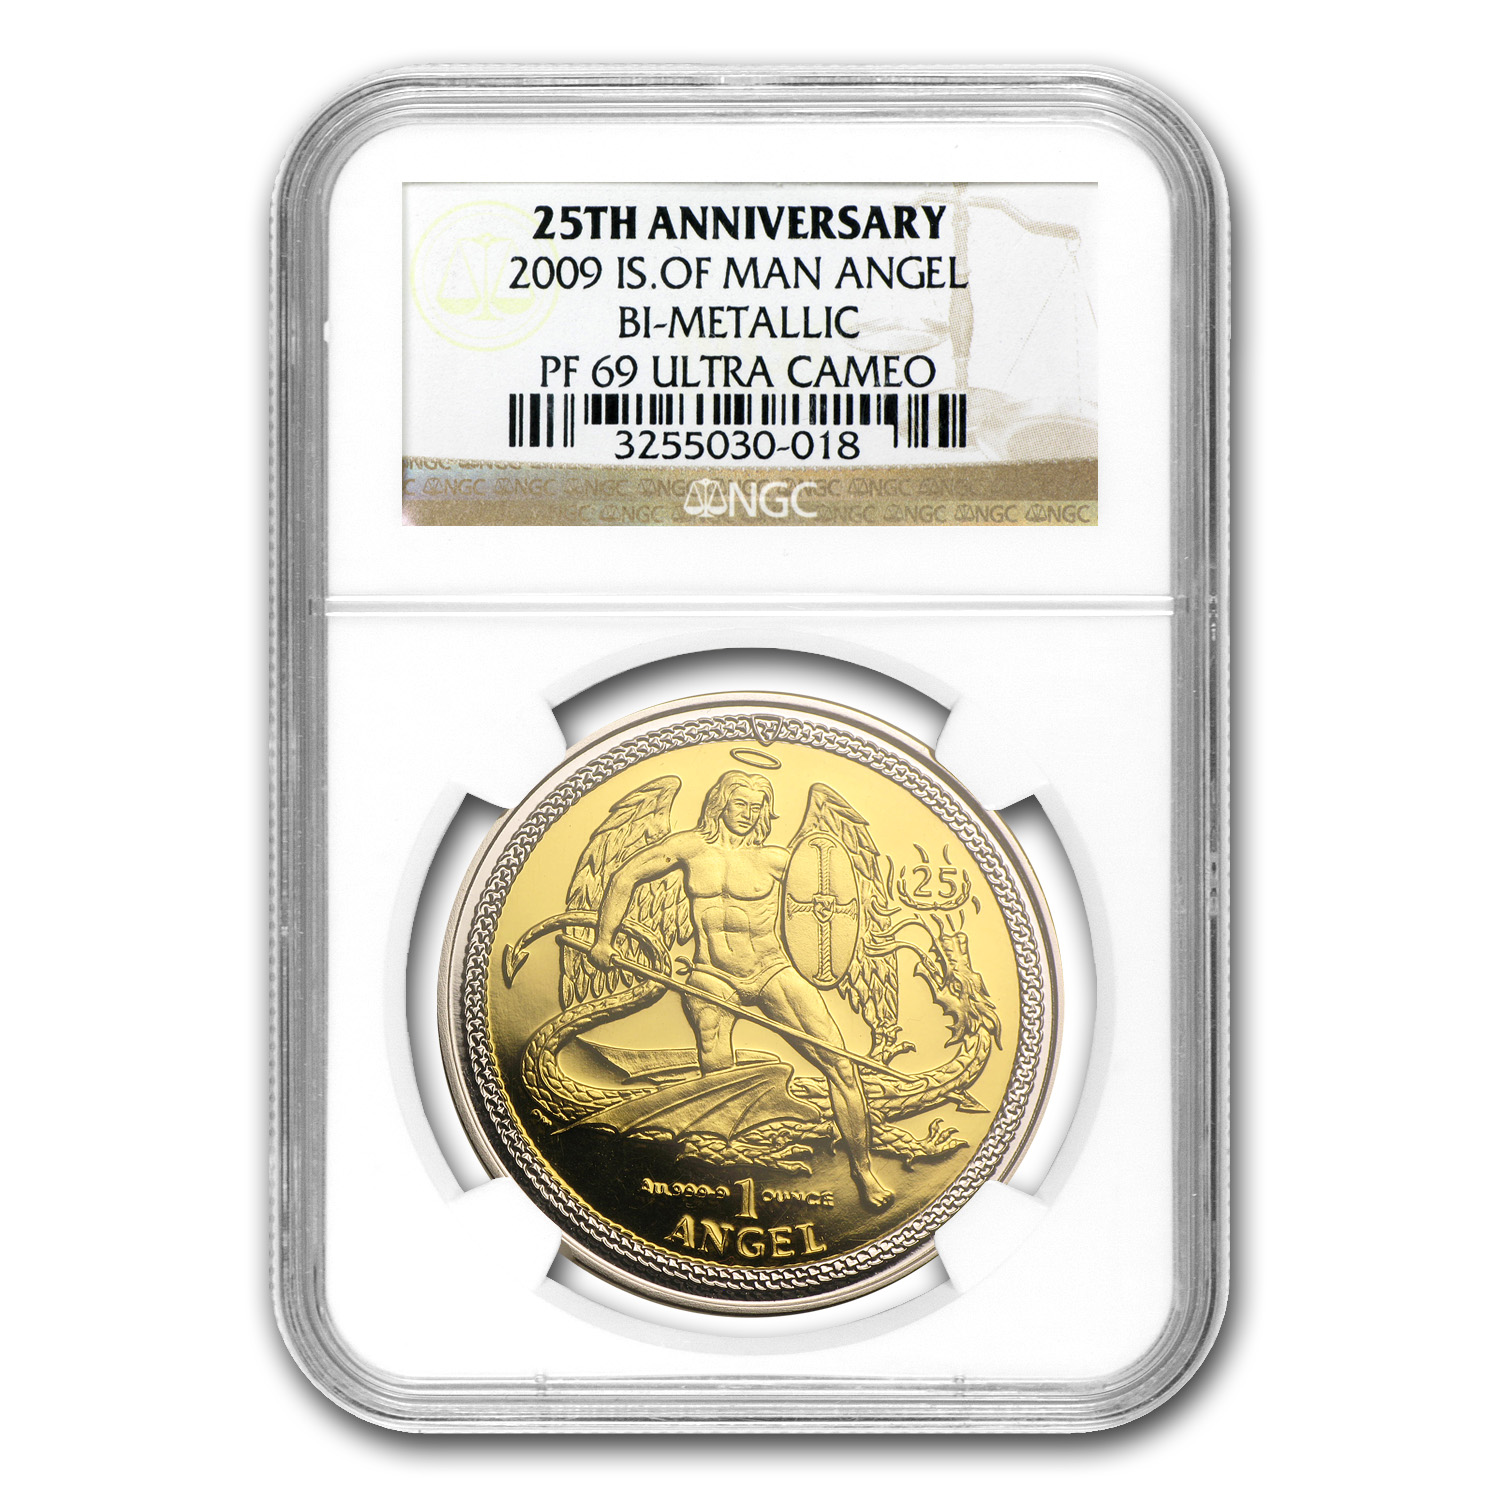 2009 Isle of Man Bi-Metallic Angel PF-69 NGC (25th Anniv)